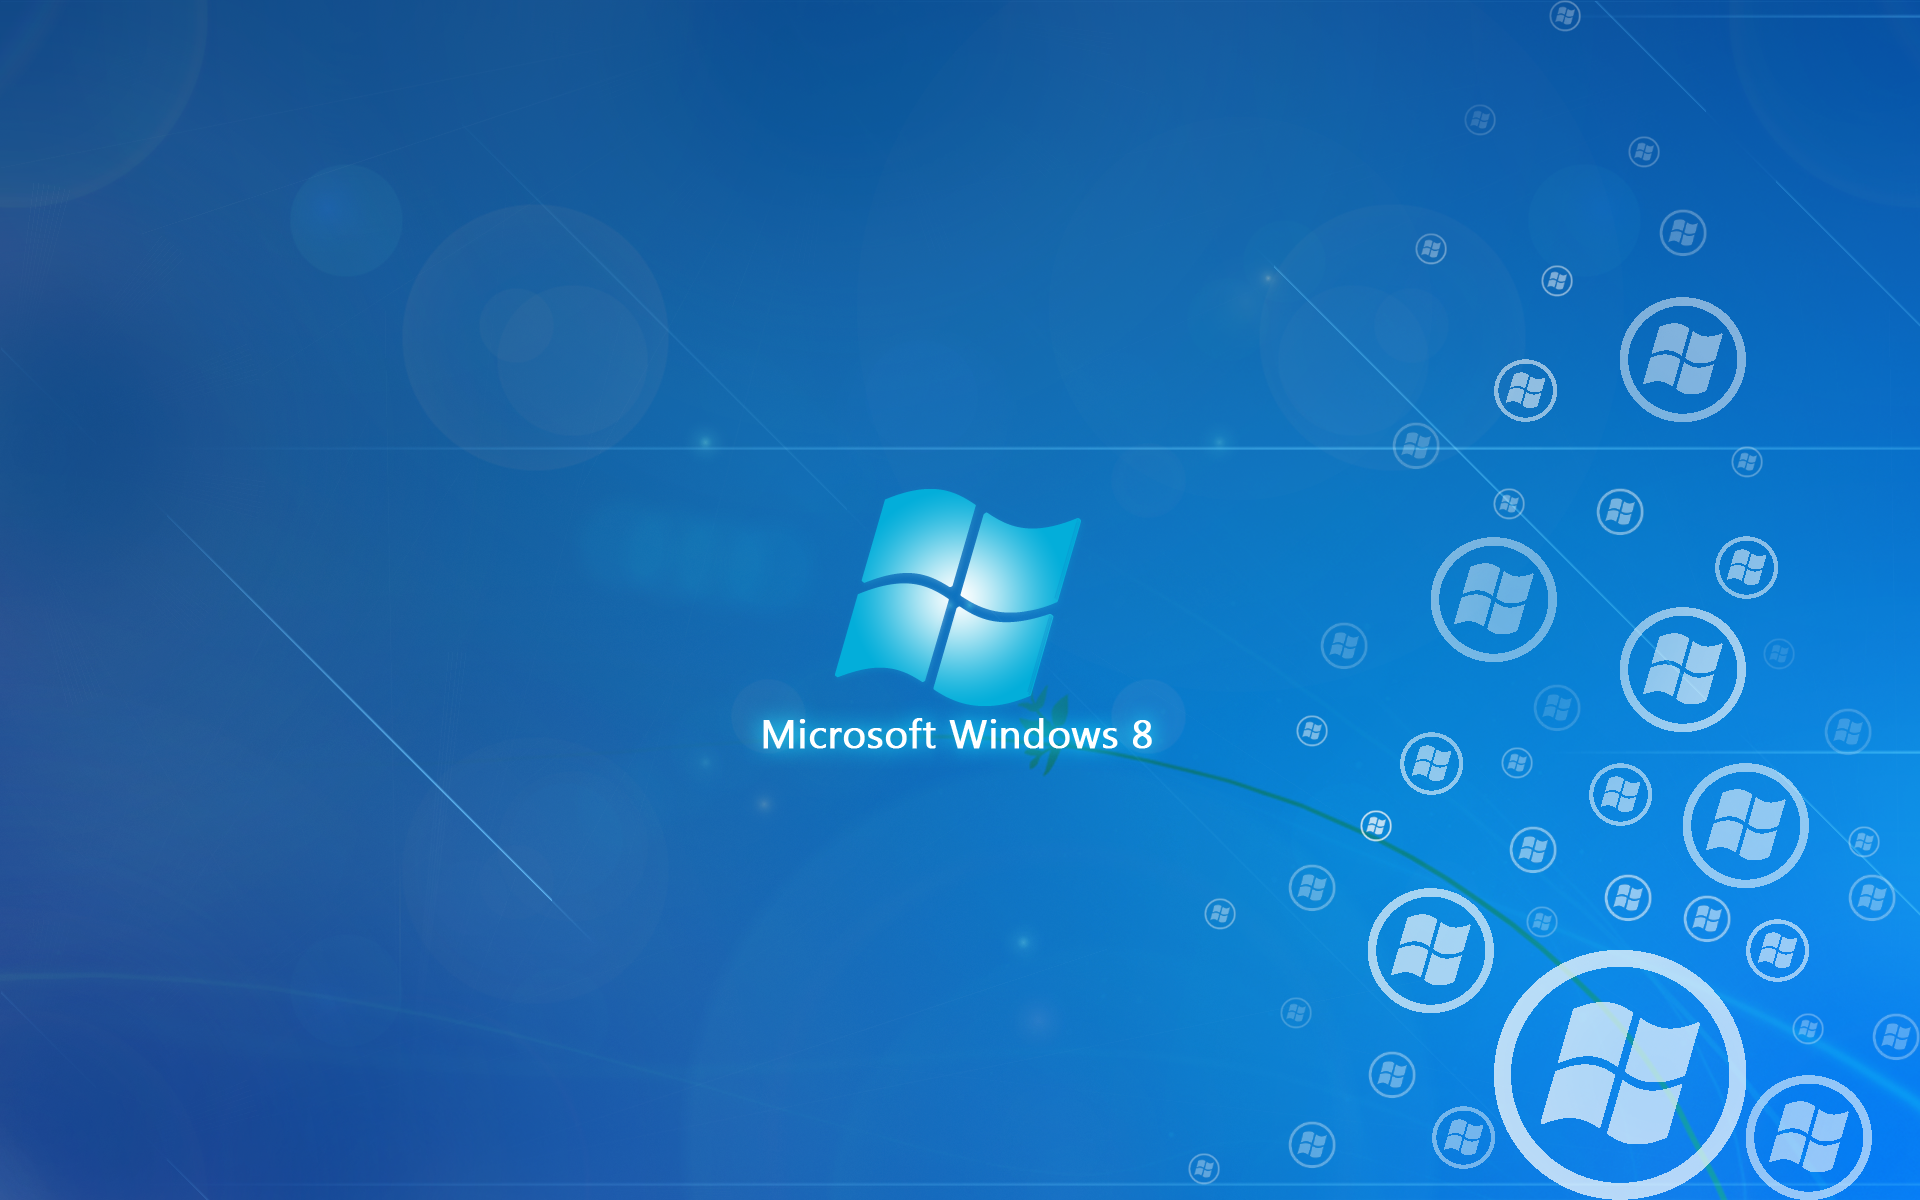 Hd wallpaper pack download - Download Microsoft Windows 8 Wallpapers Pack 1 Wallpapers Techmynd